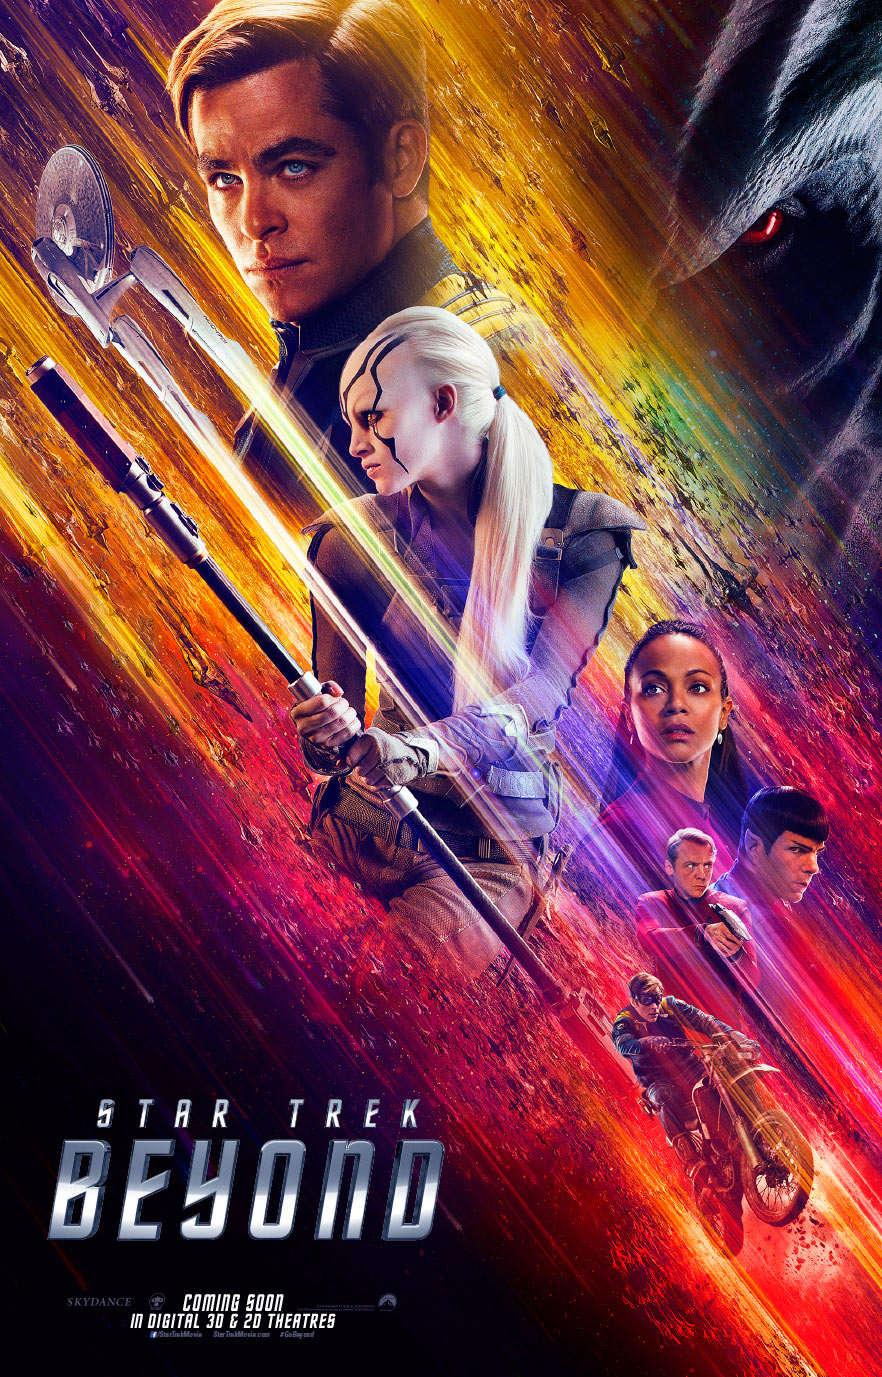 New Poster for Star Trek Beyond